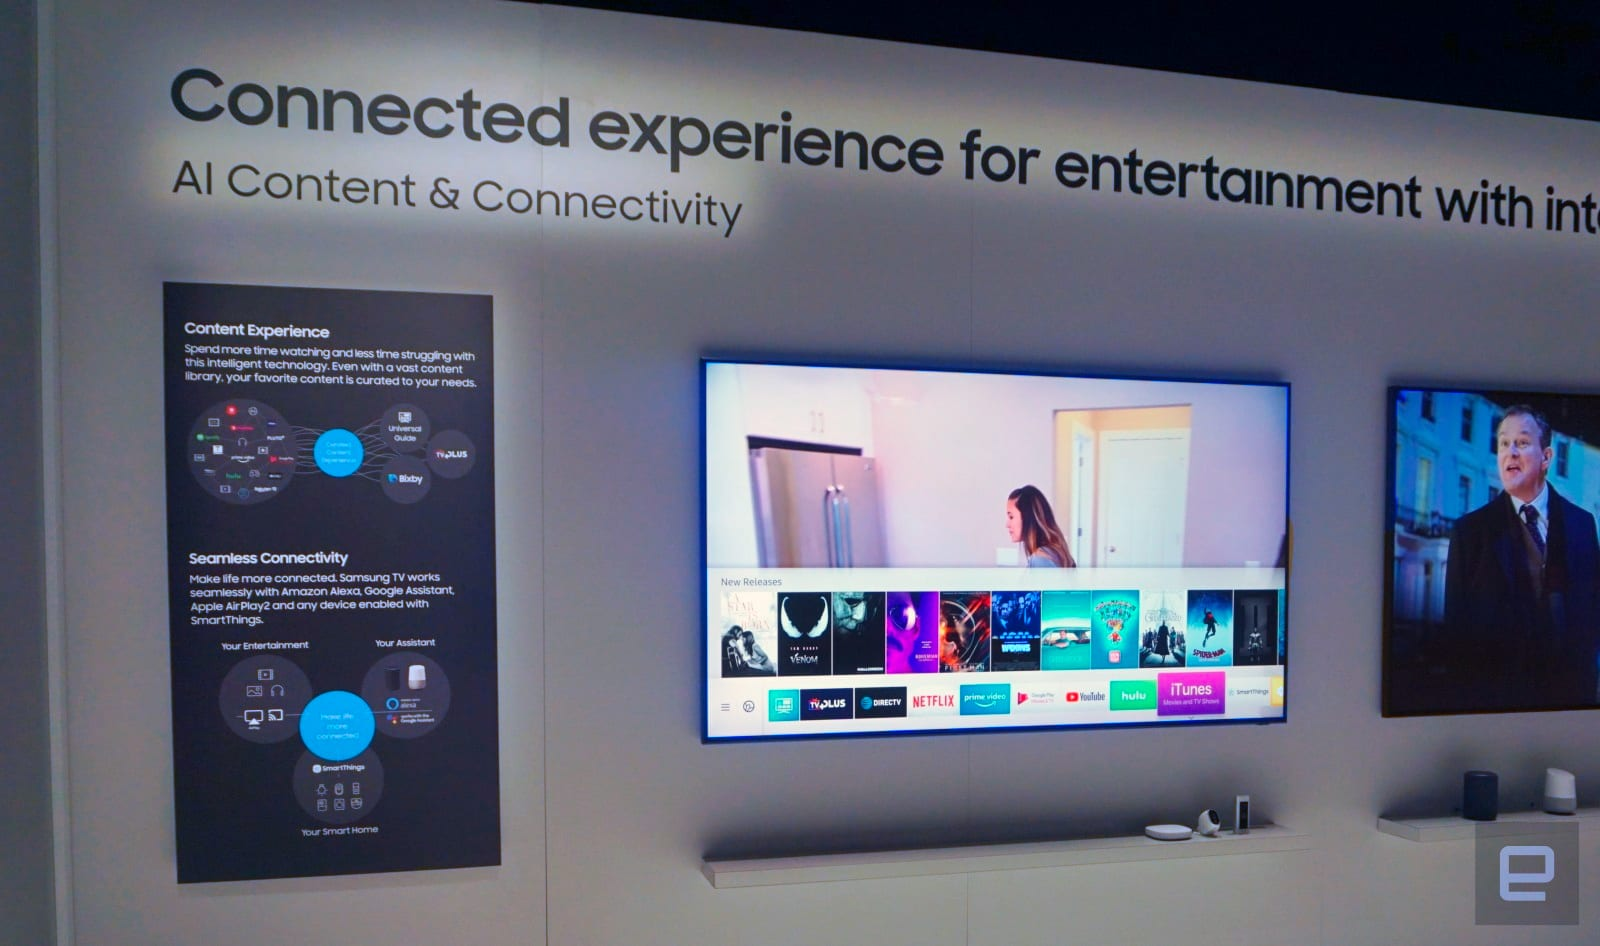 Samsung's newest TVs will work with Google Assistant and Alexa